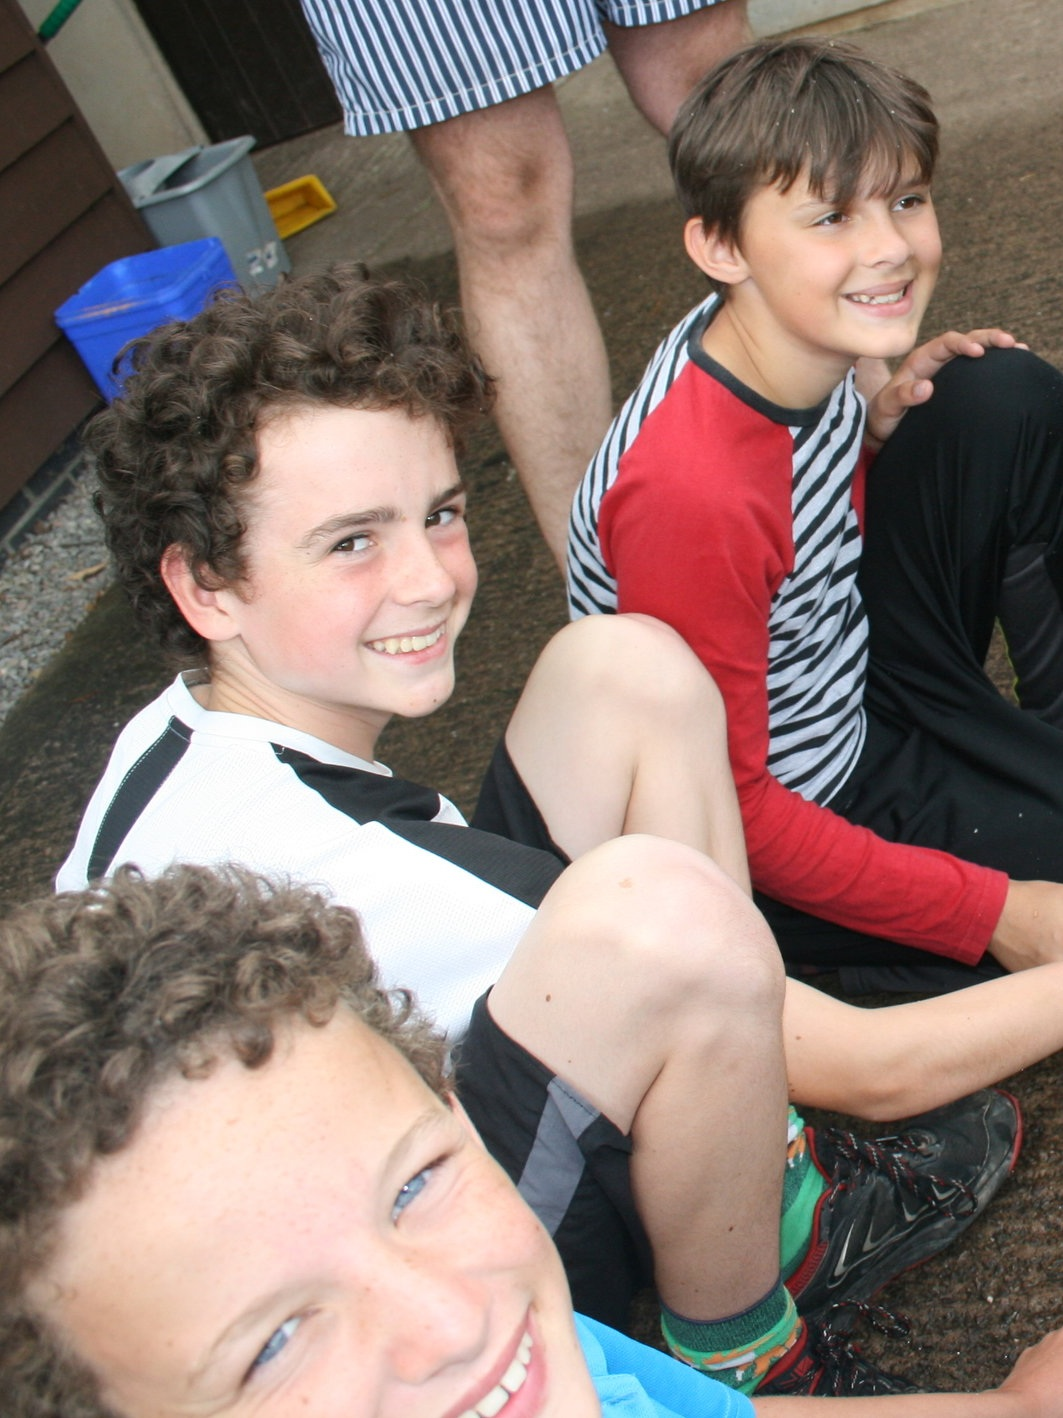 fun and games on christian activity holiday